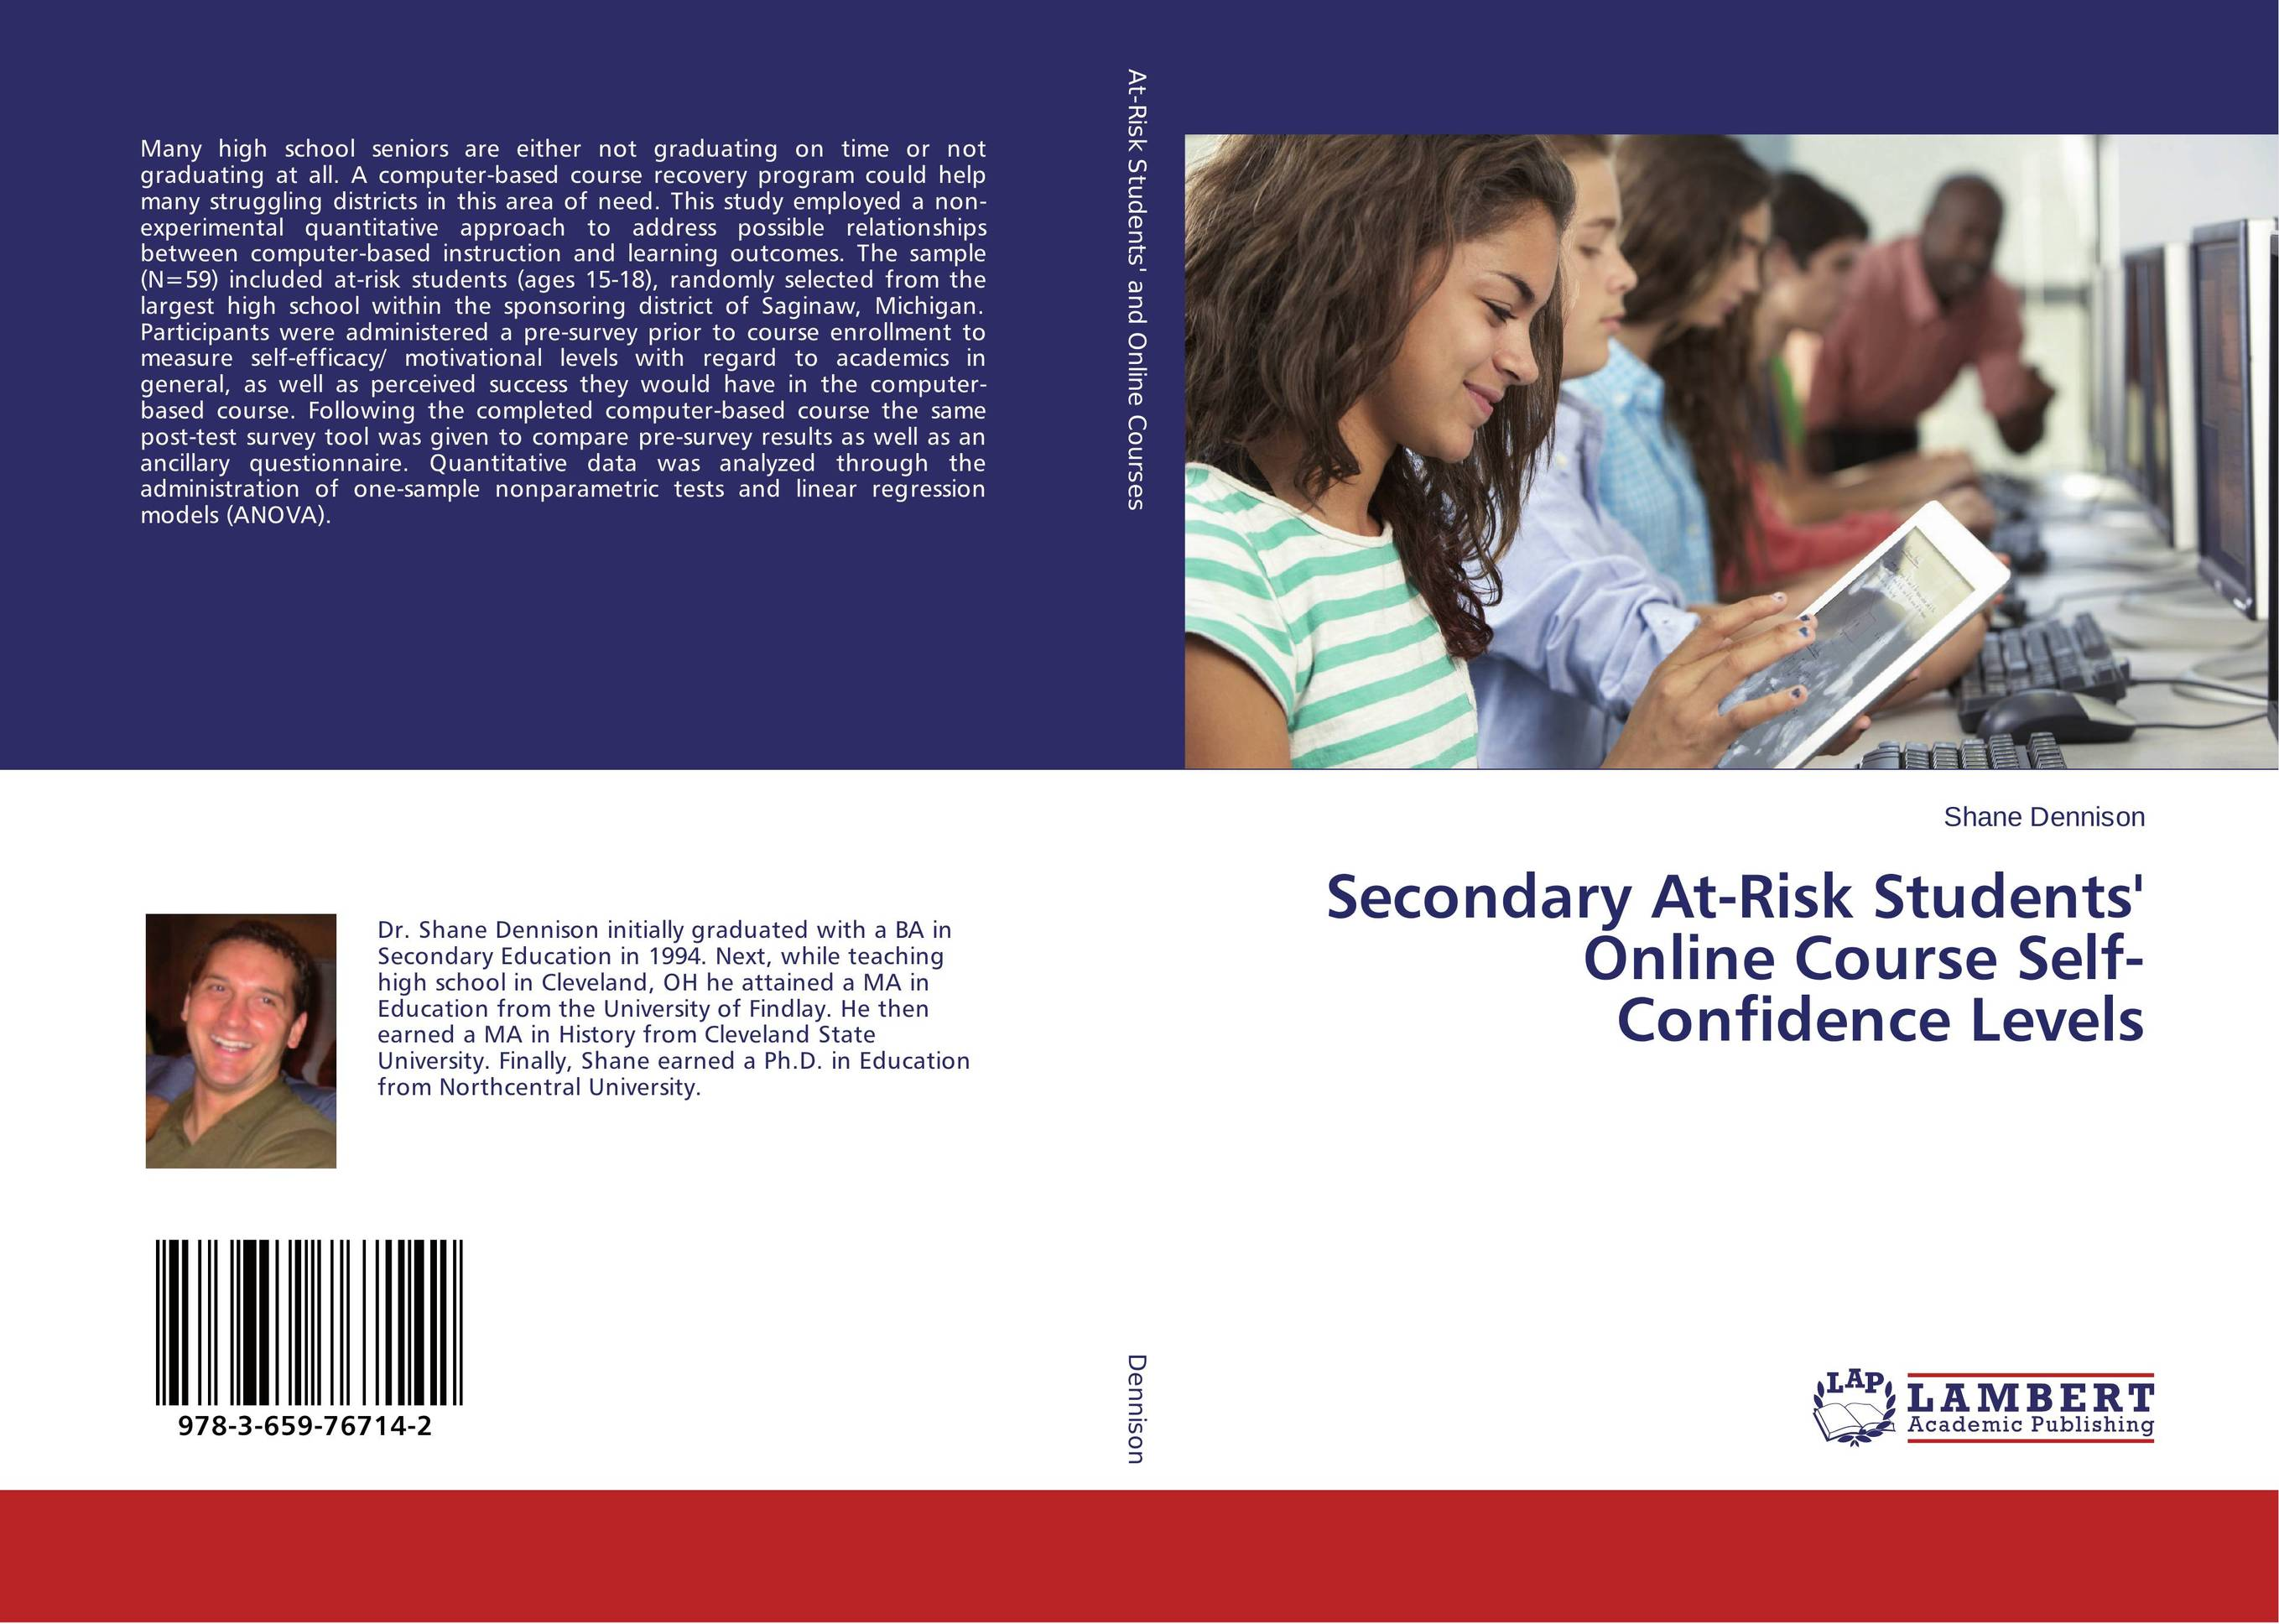 Secondary At-Risk Students' Online Course Self-Confidence Levels course enrollment decisions